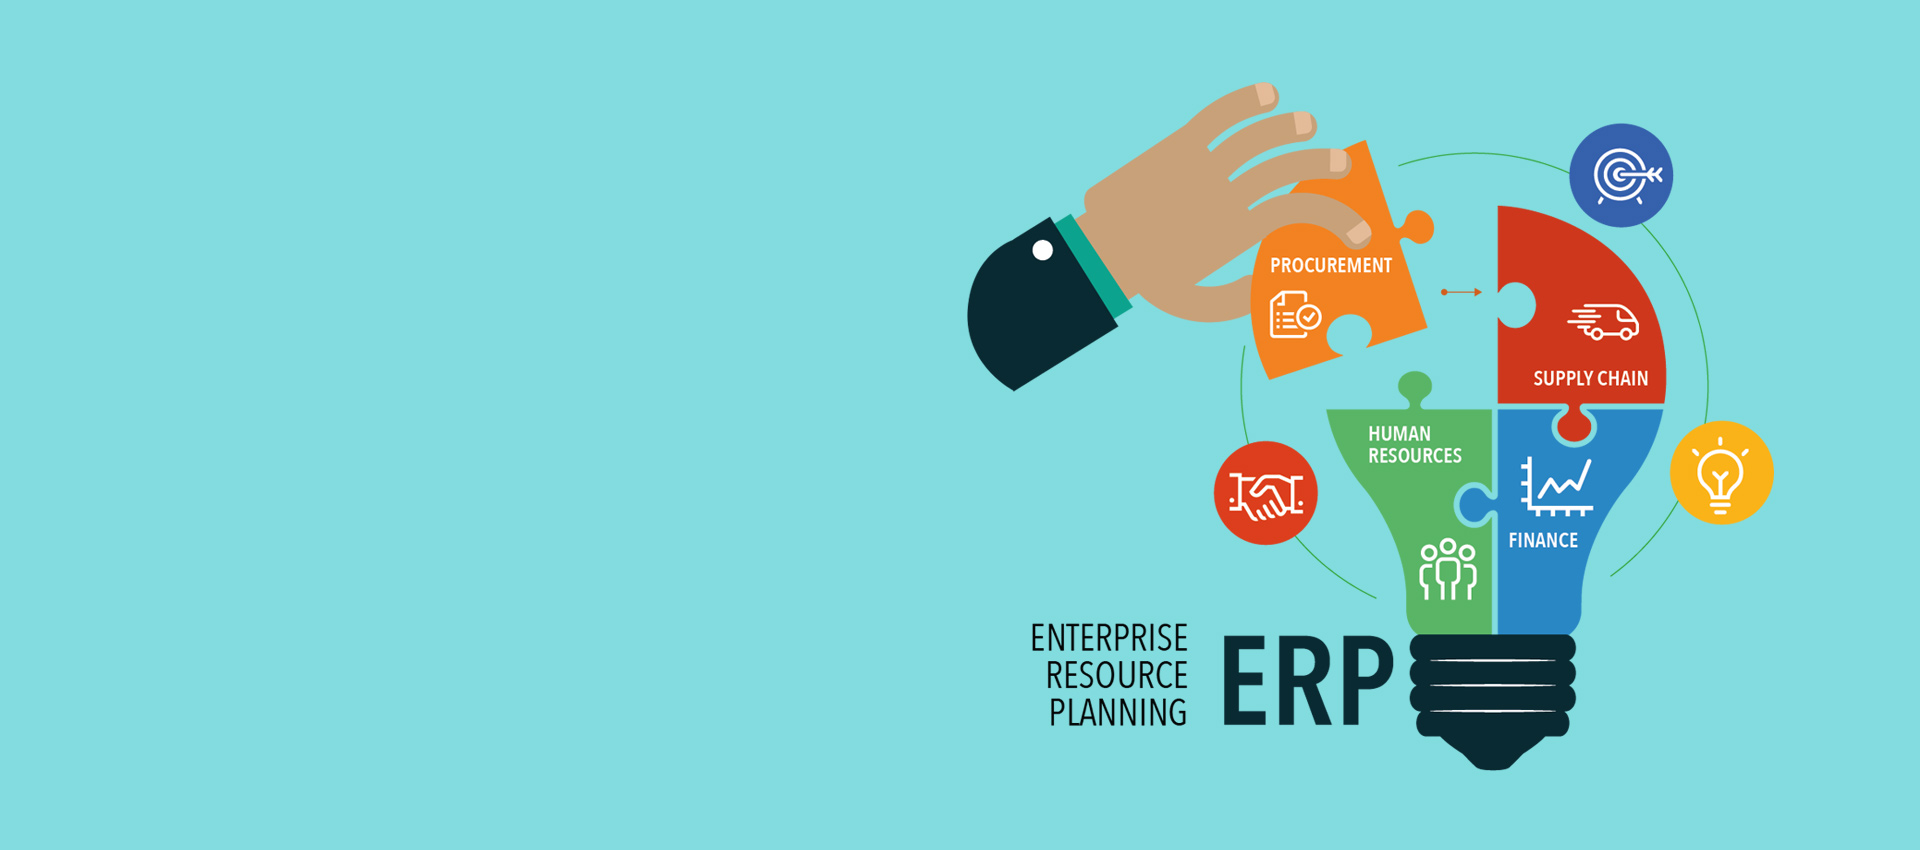 Enterprise Resource Planning ERP,